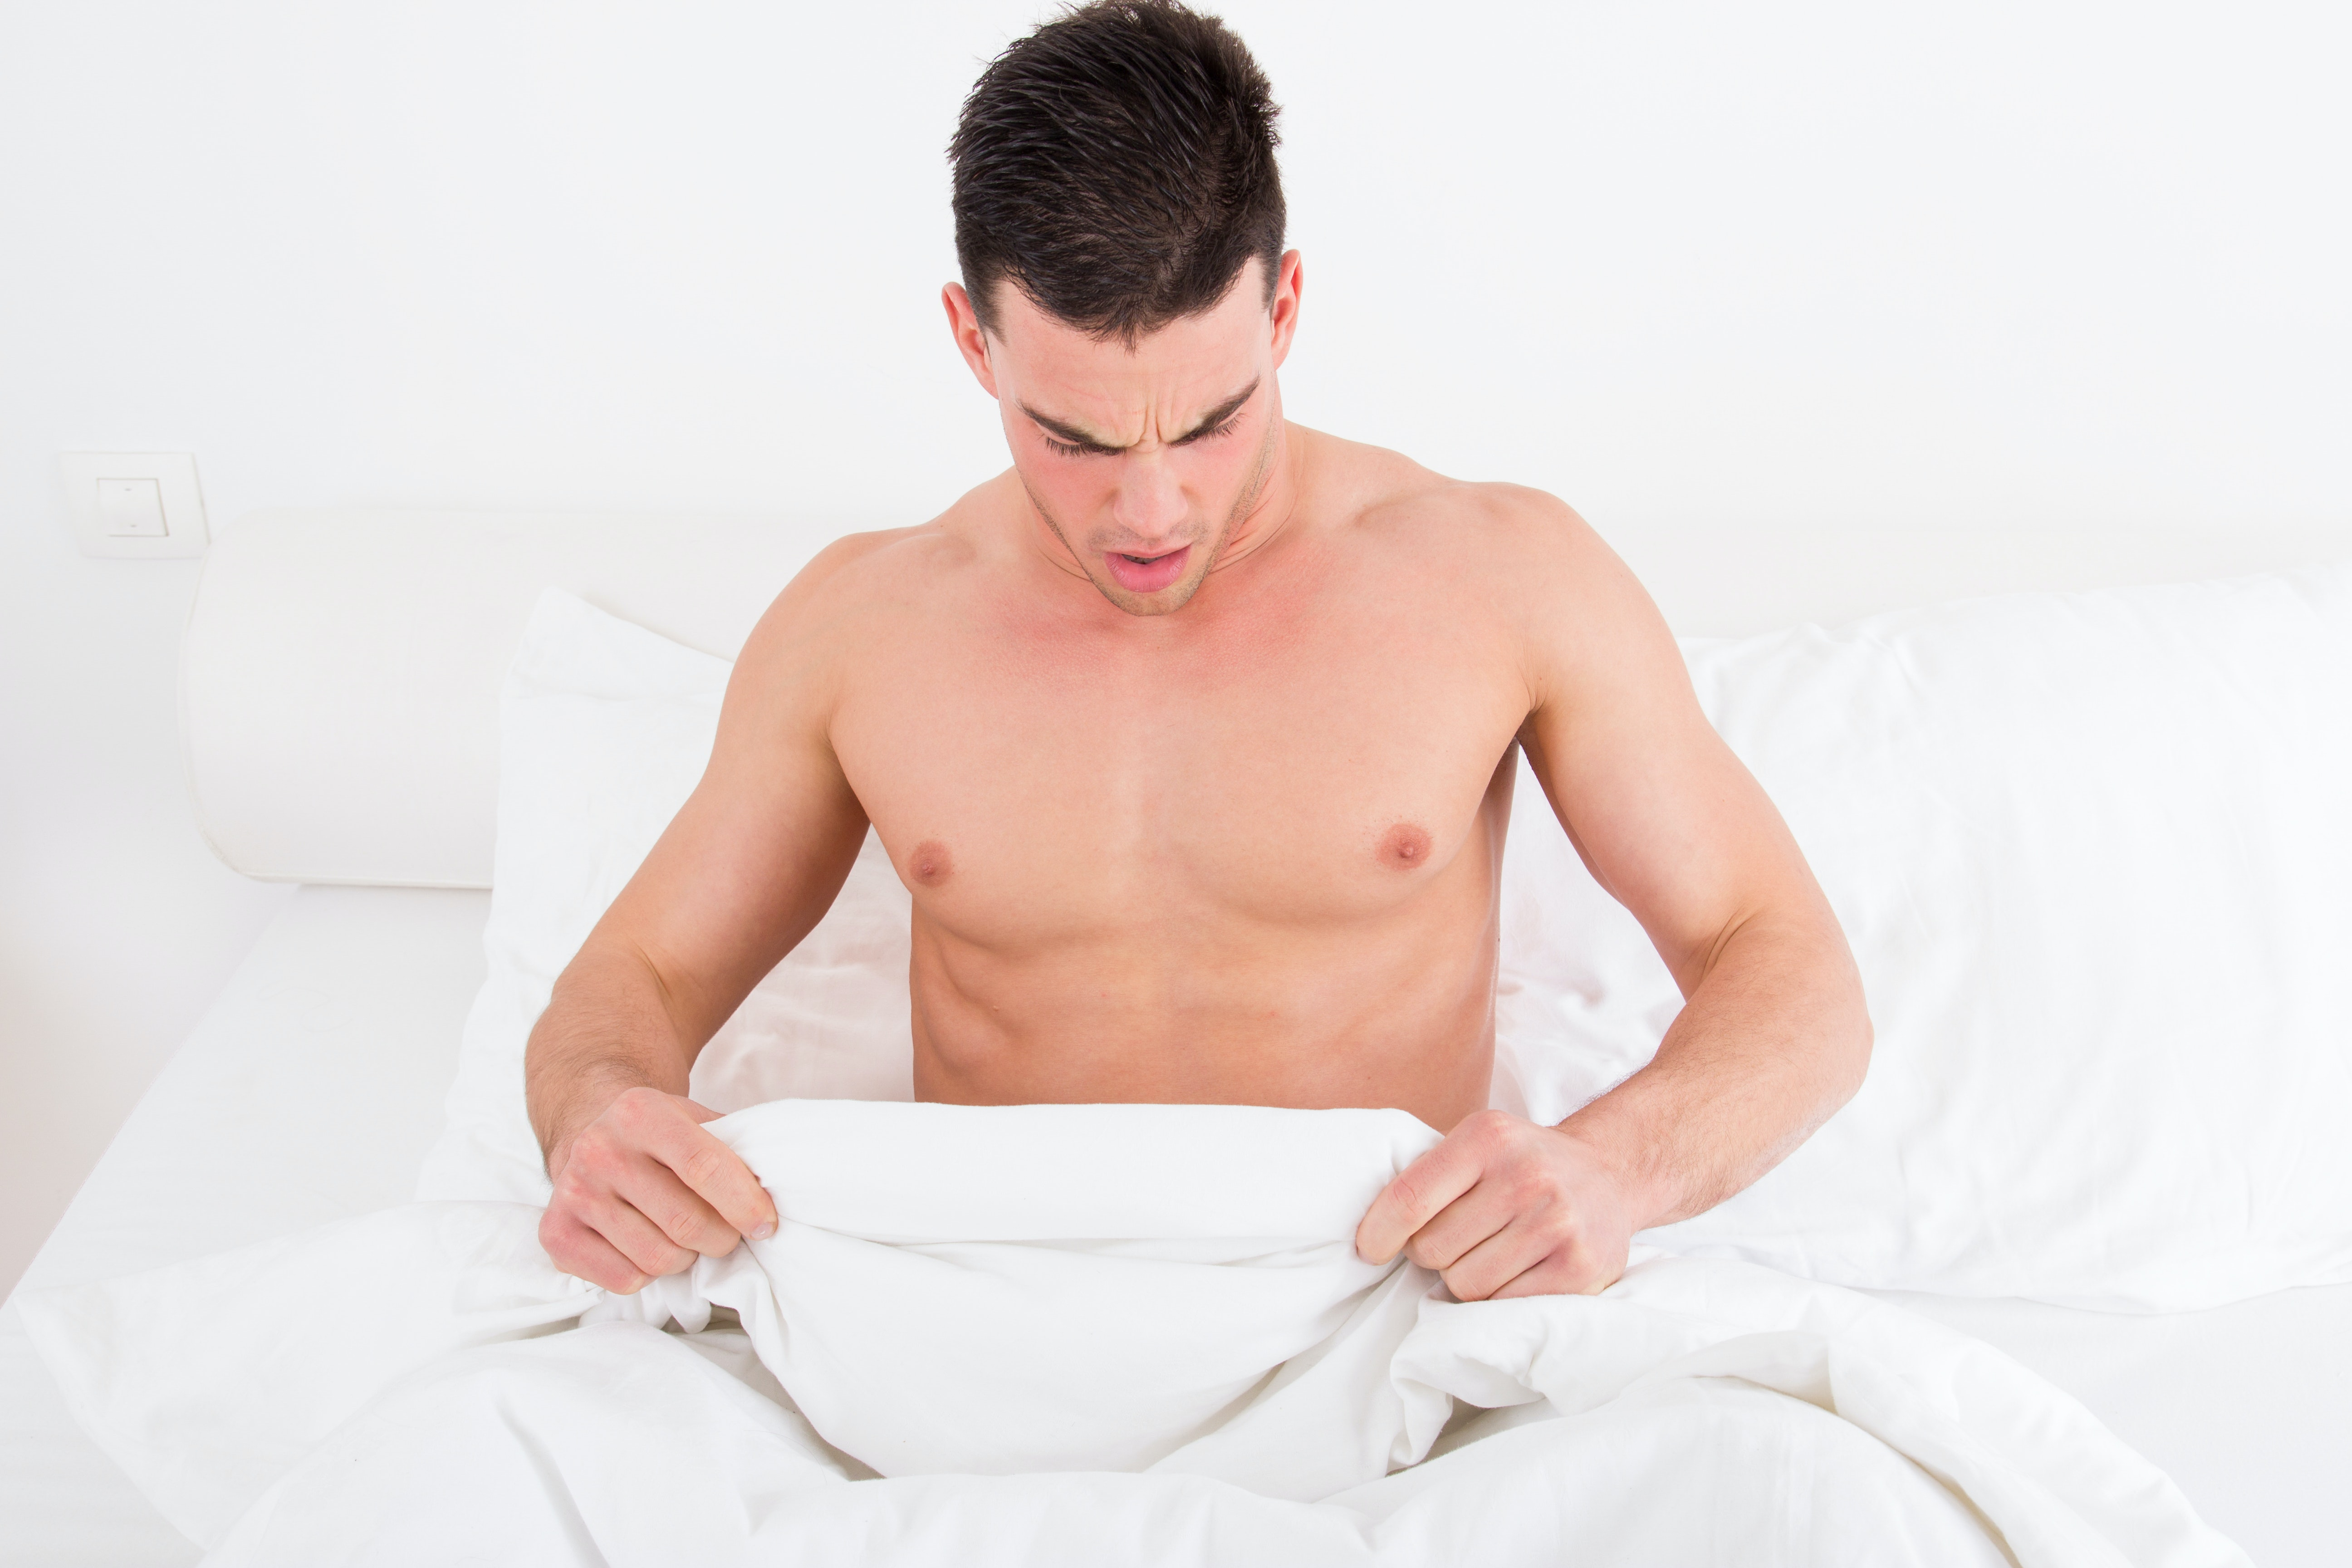 An image depicting a person suffering from penile skin changes symptoms